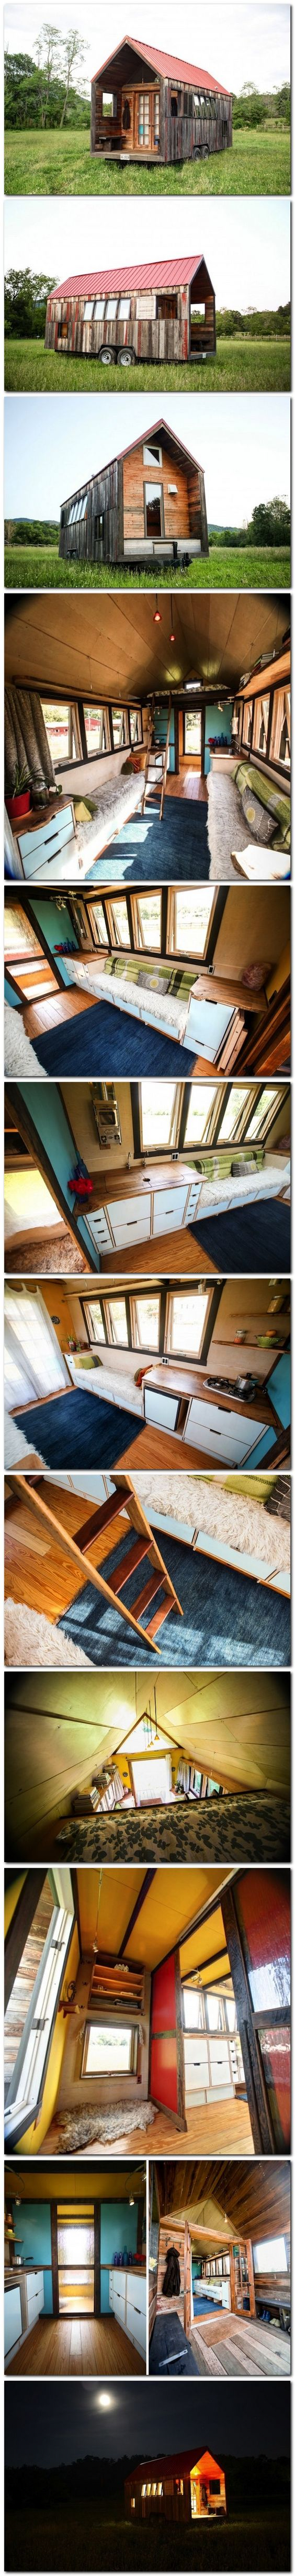 A tiny house that's as cozy as can be.